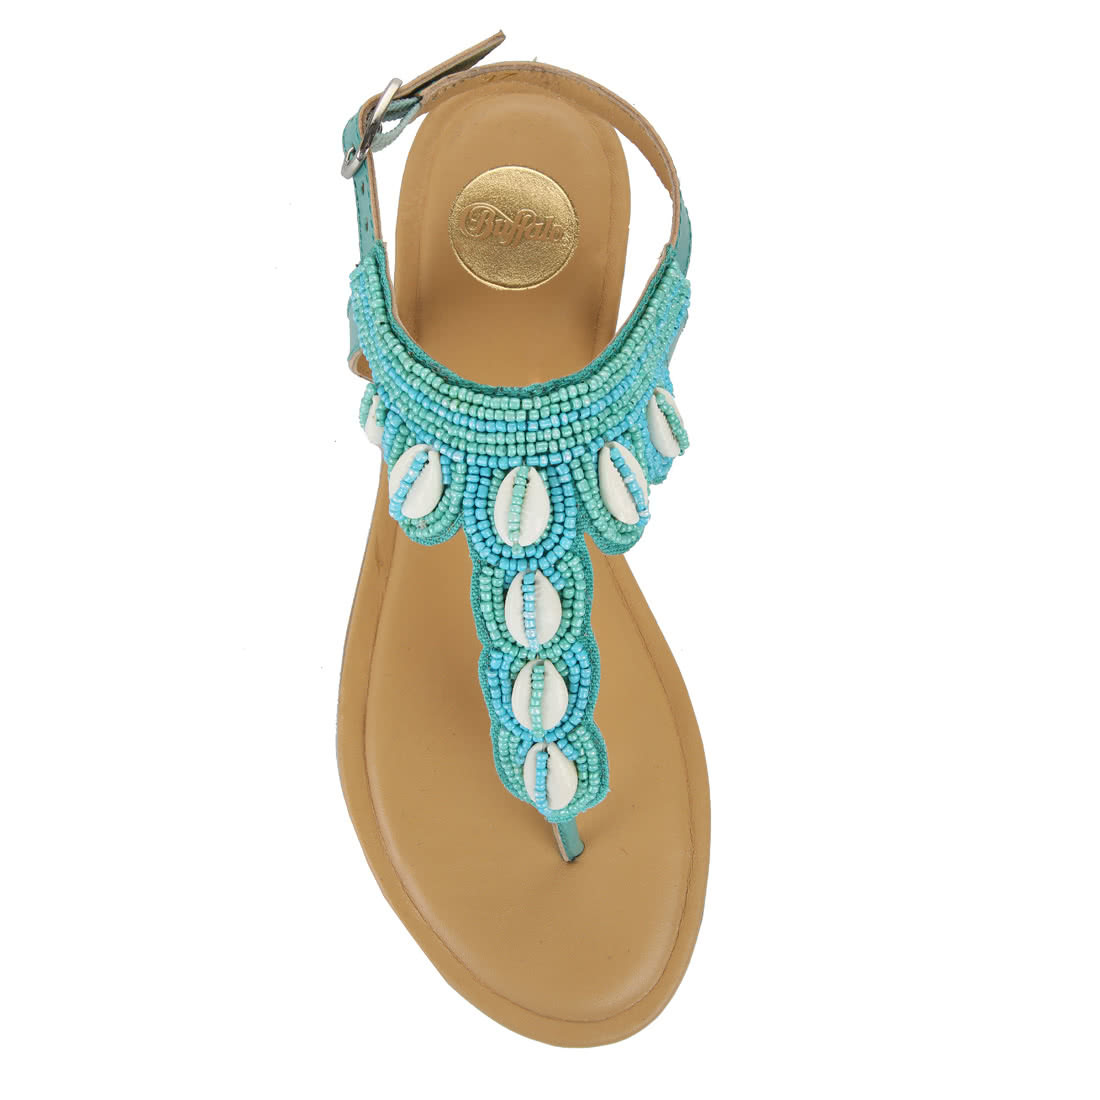 a2f4c5c98eca Buffalo sandals in turquoise with shells and pearls buy online in ...